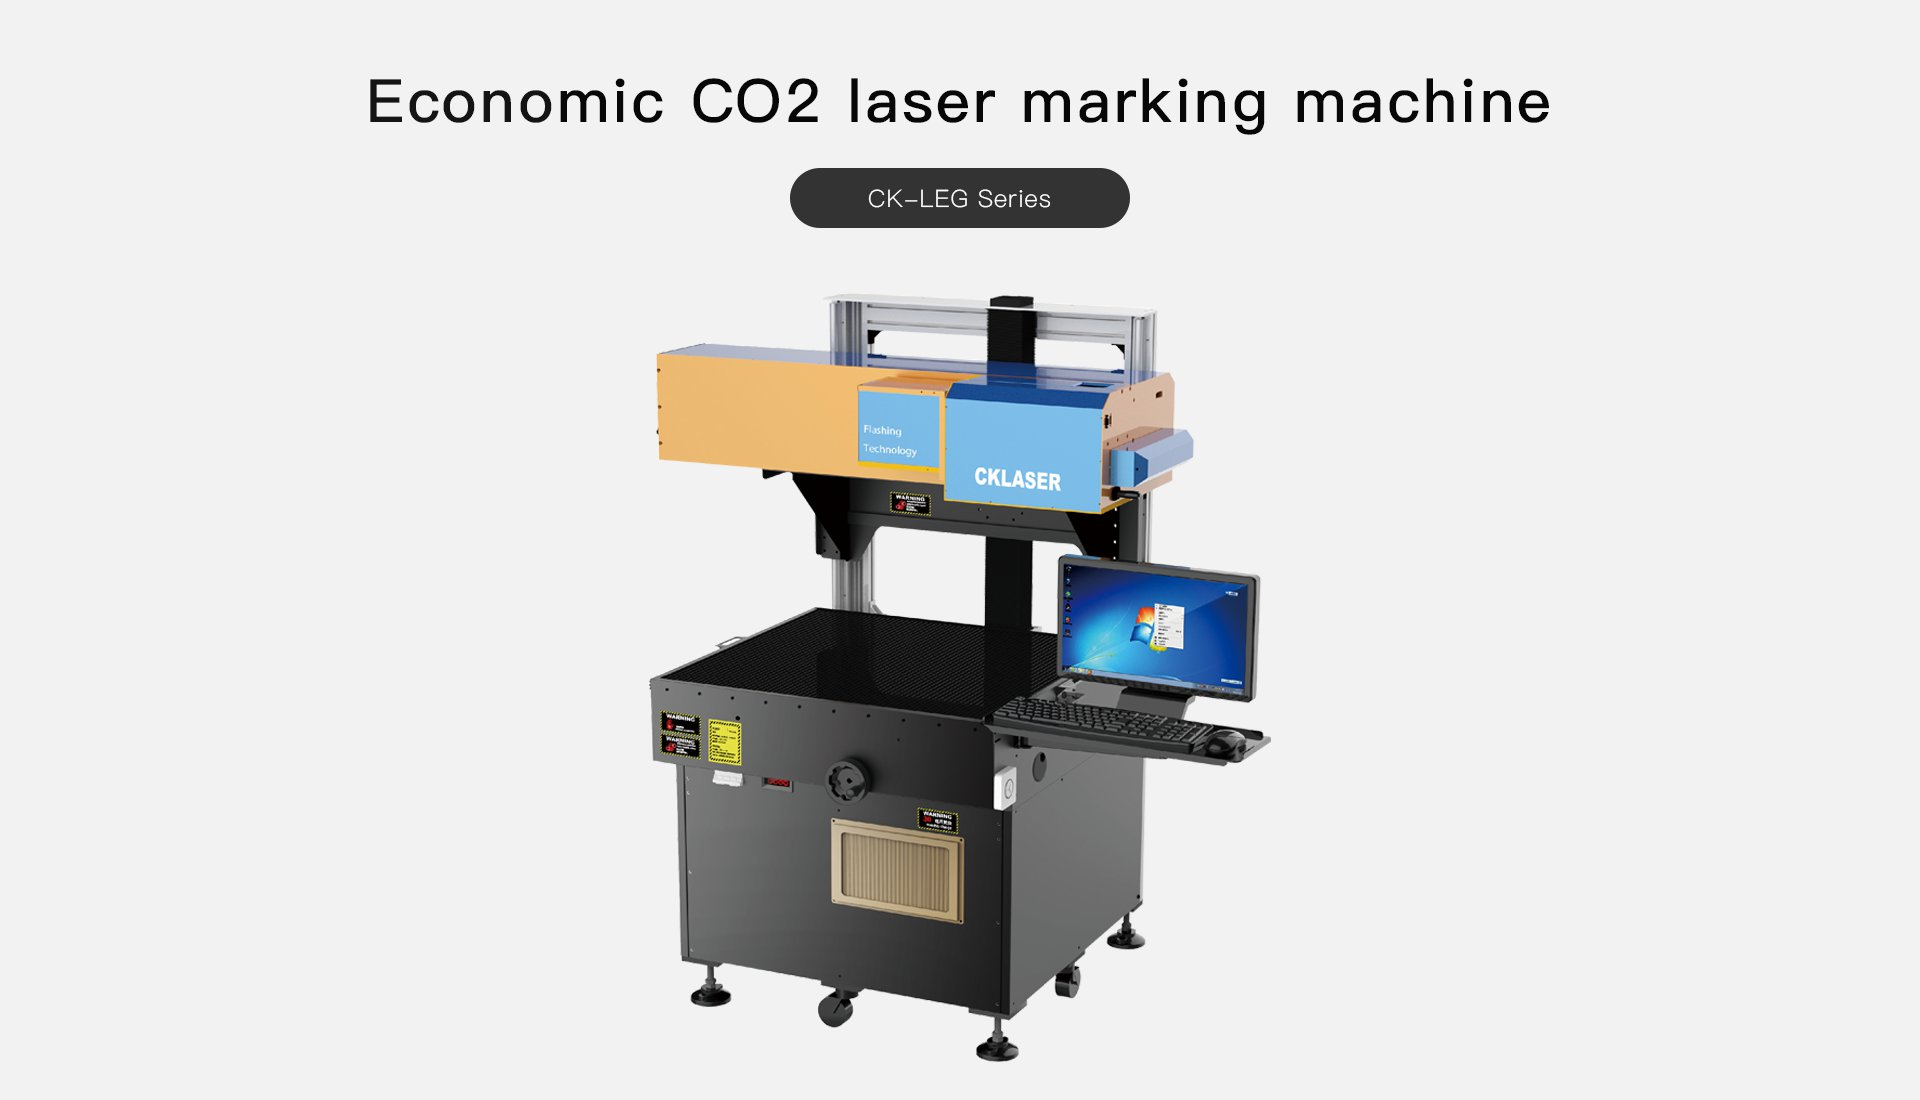 Taste Laser-co2 laser equipment